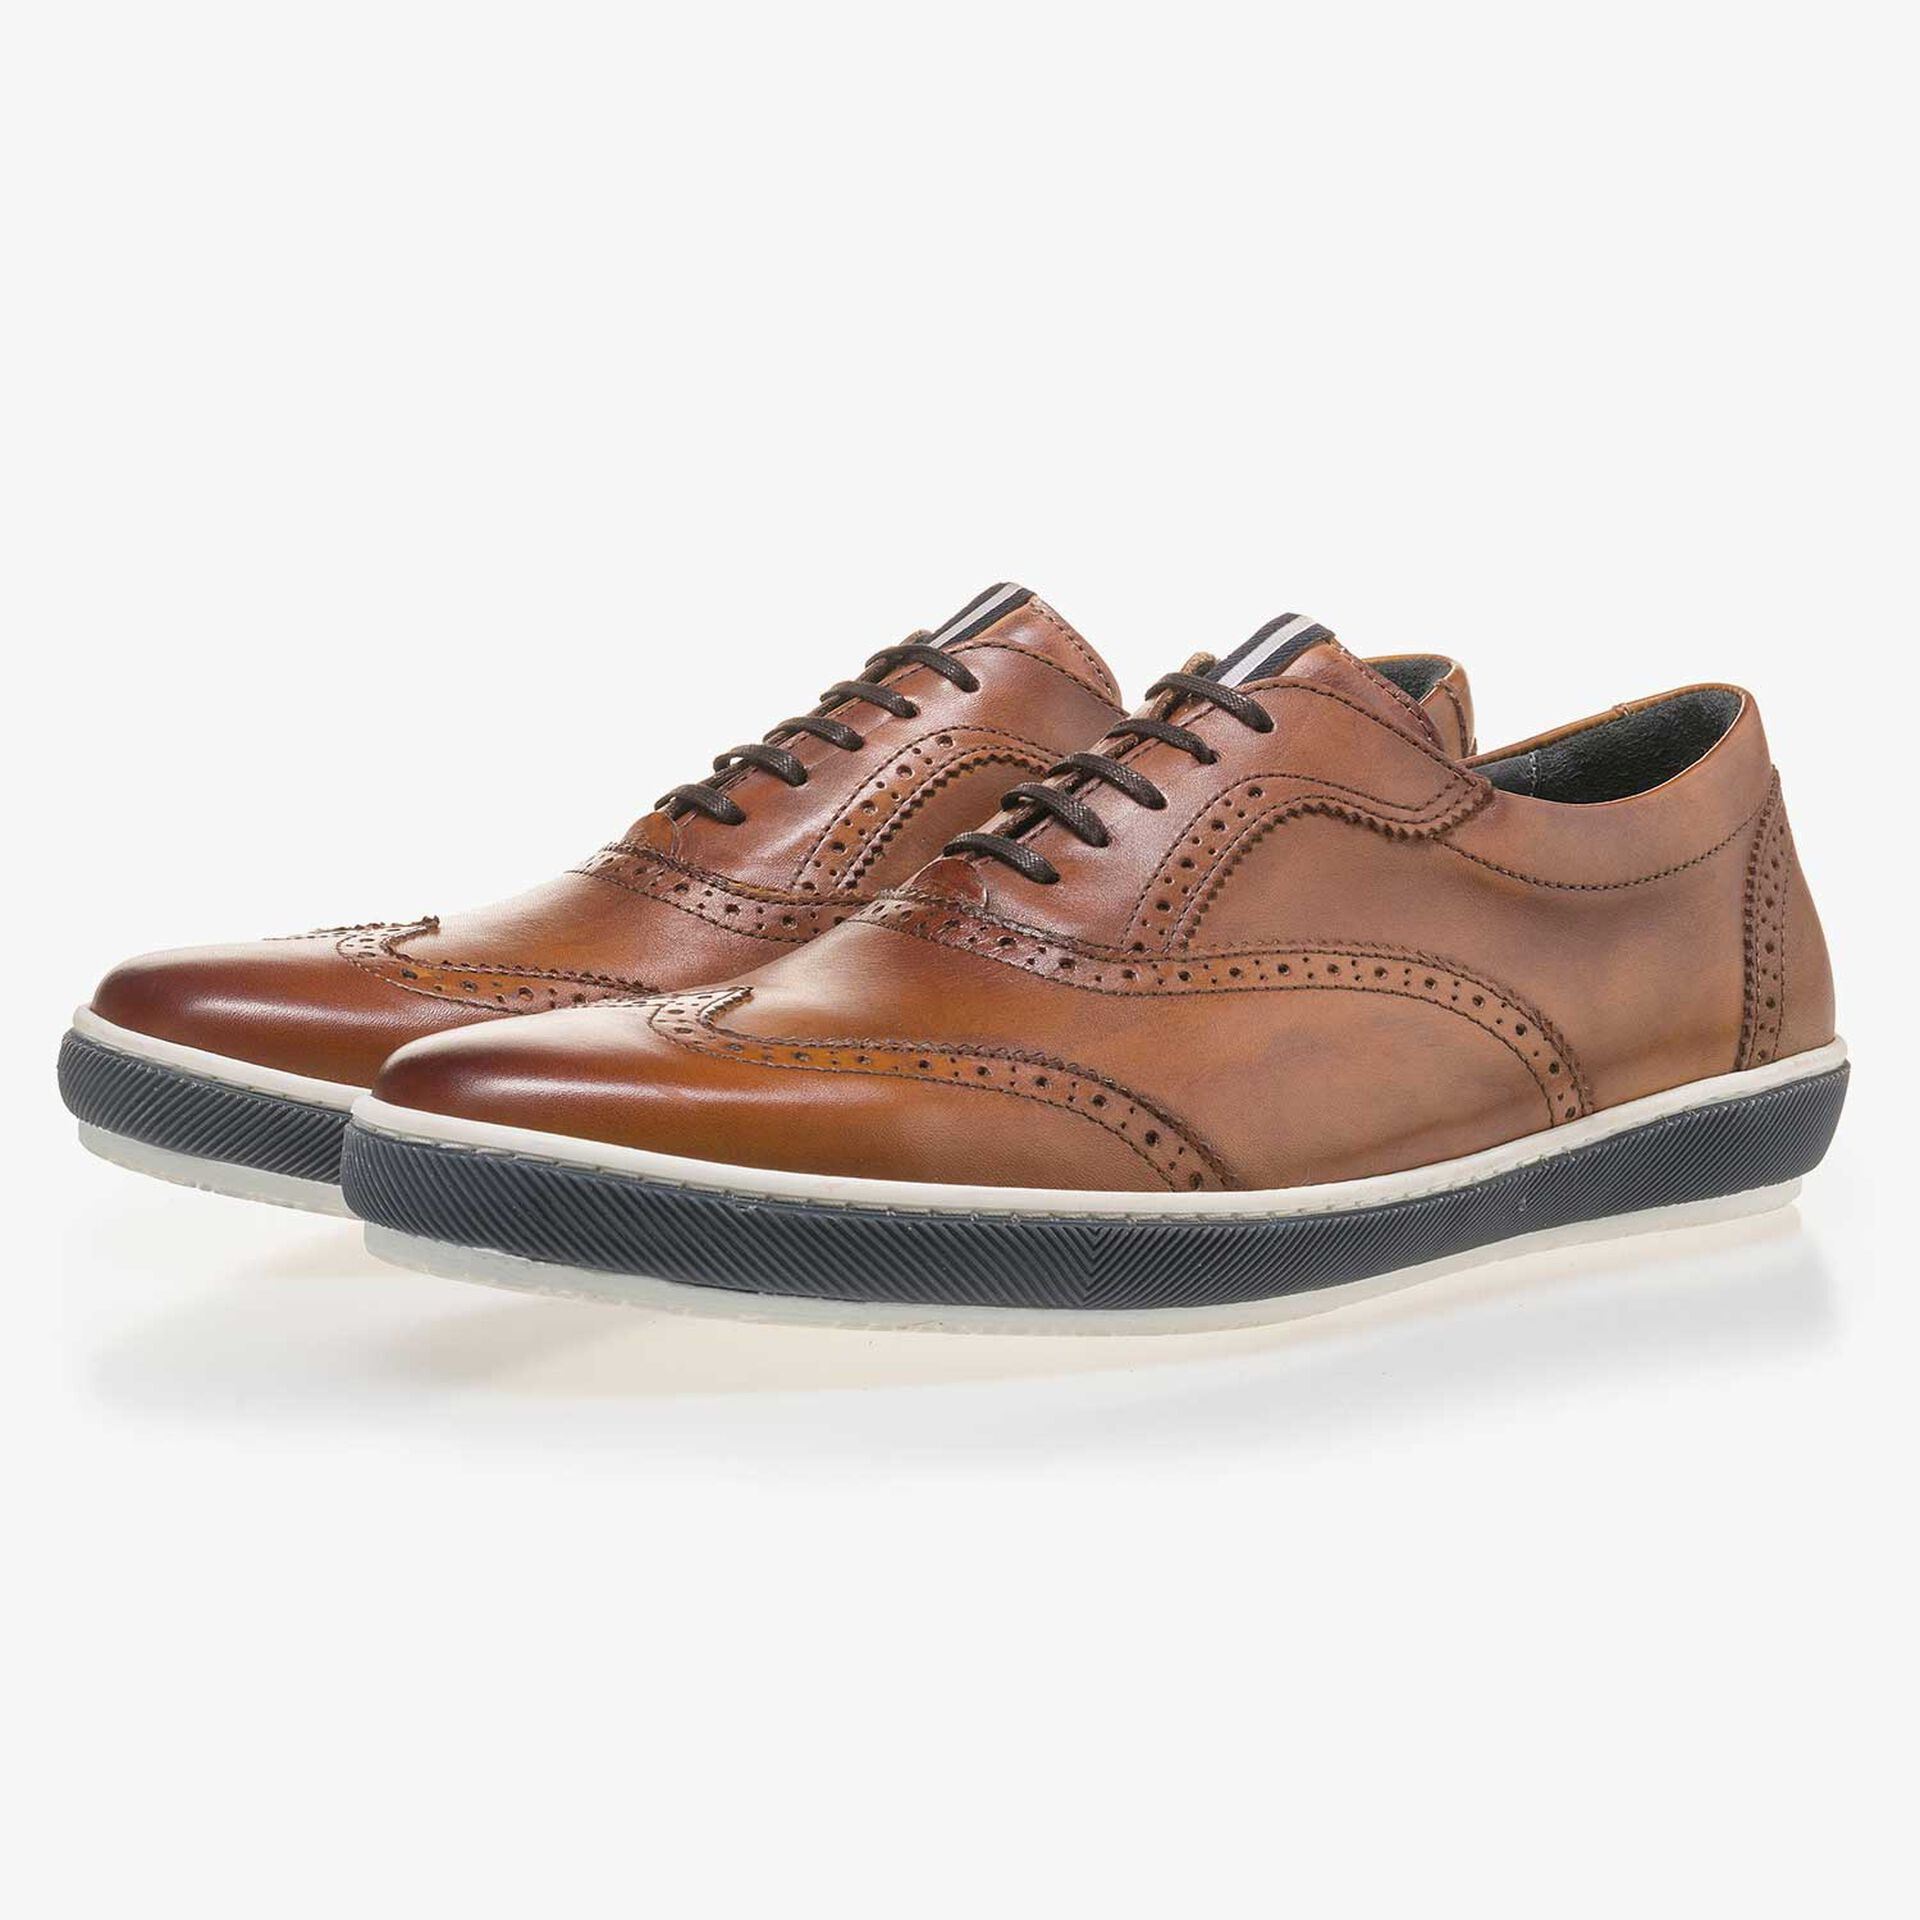 Cognac-coloured brogue leather sneaker